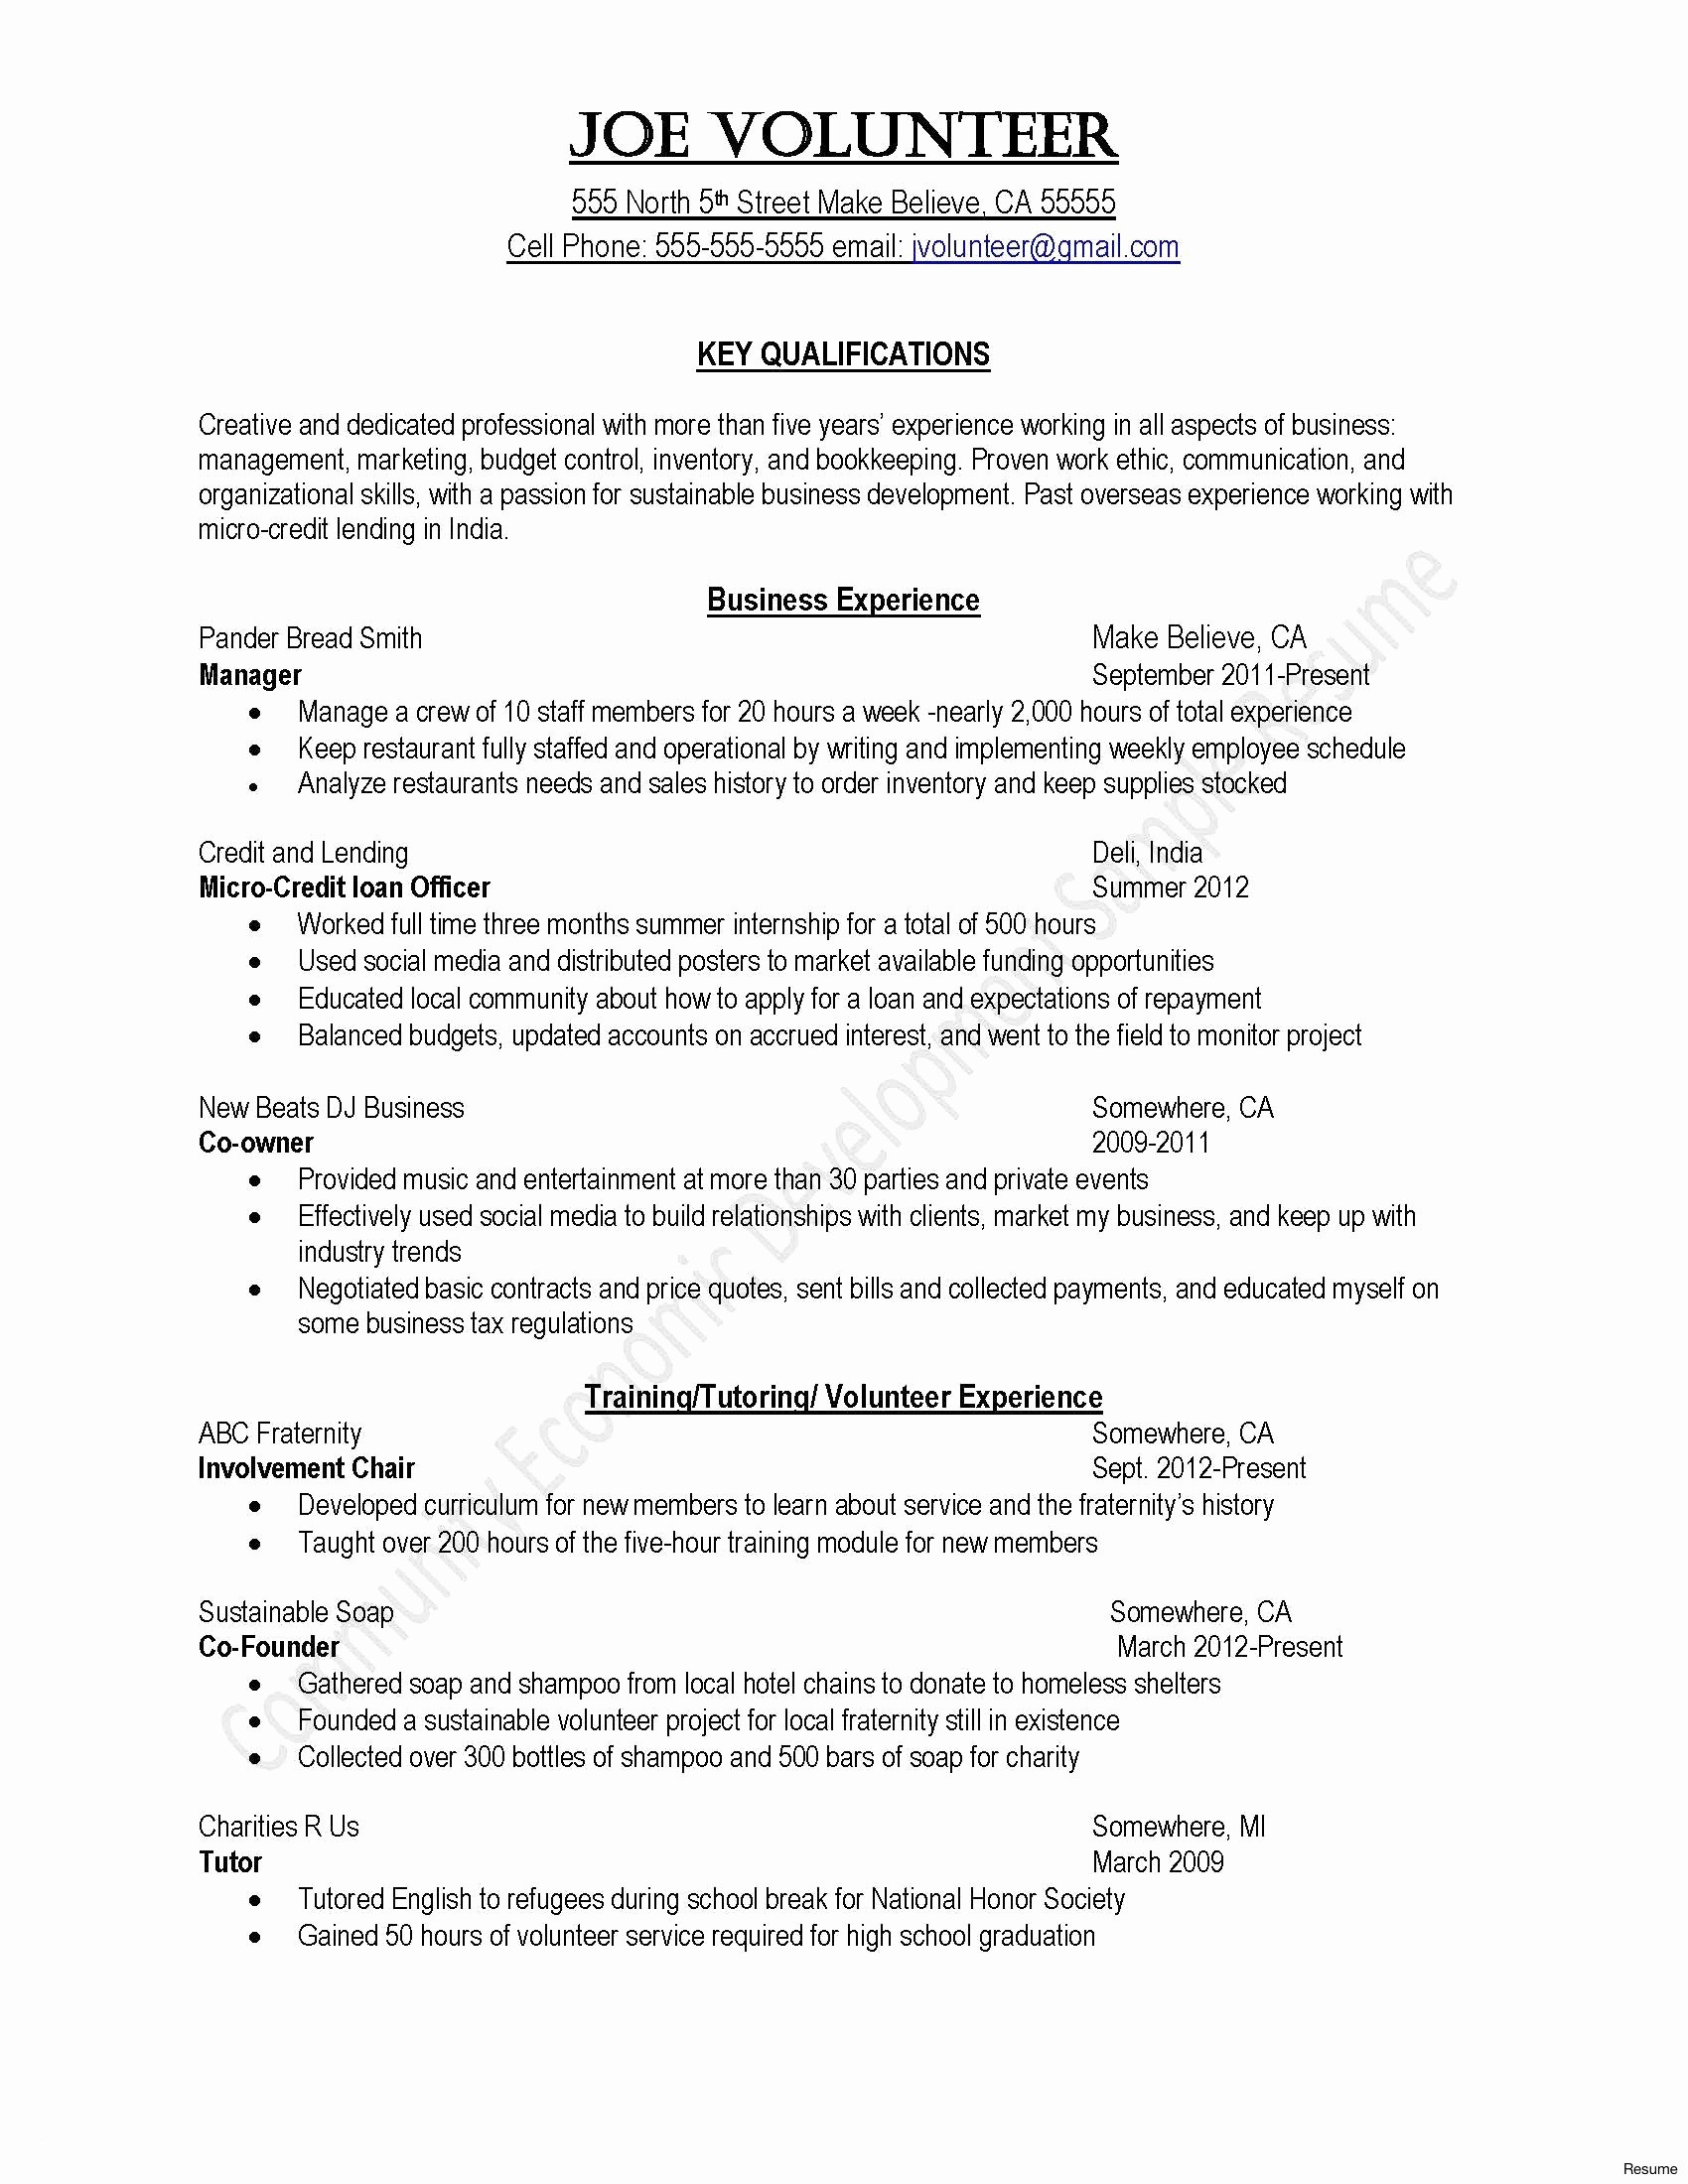 elementary teaching resume template example-Elementary Education Resume Best Tutor Resume Example Luxury Resume Puter Skills Examples Fresh Od 14-f